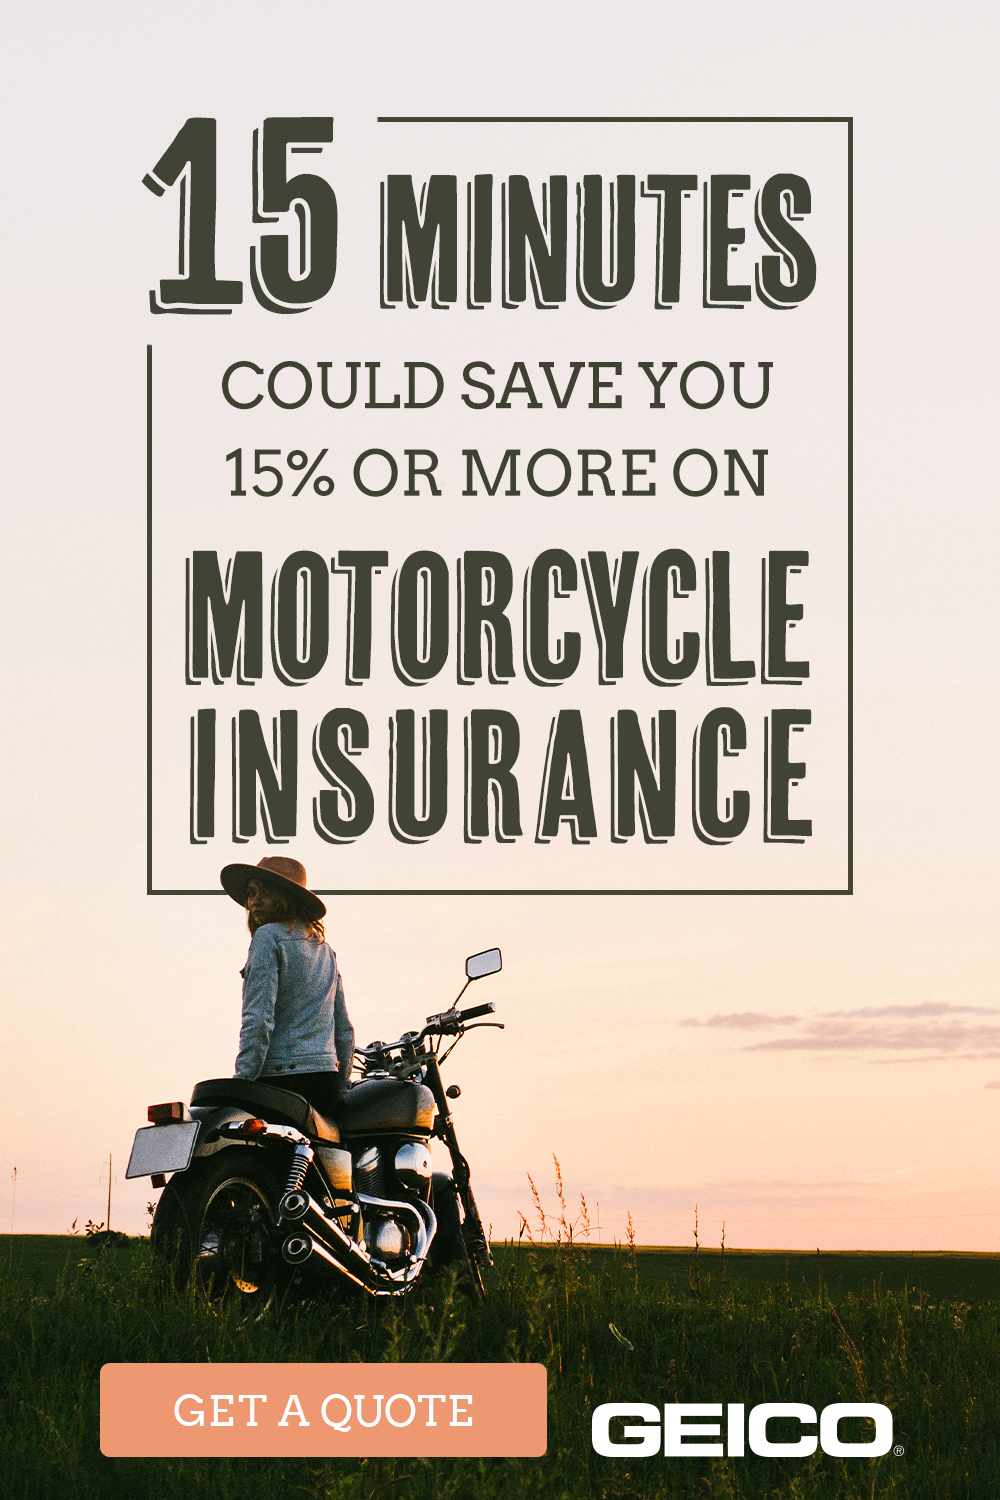 Geico Motorcycle Insurance Customer Service Number ...